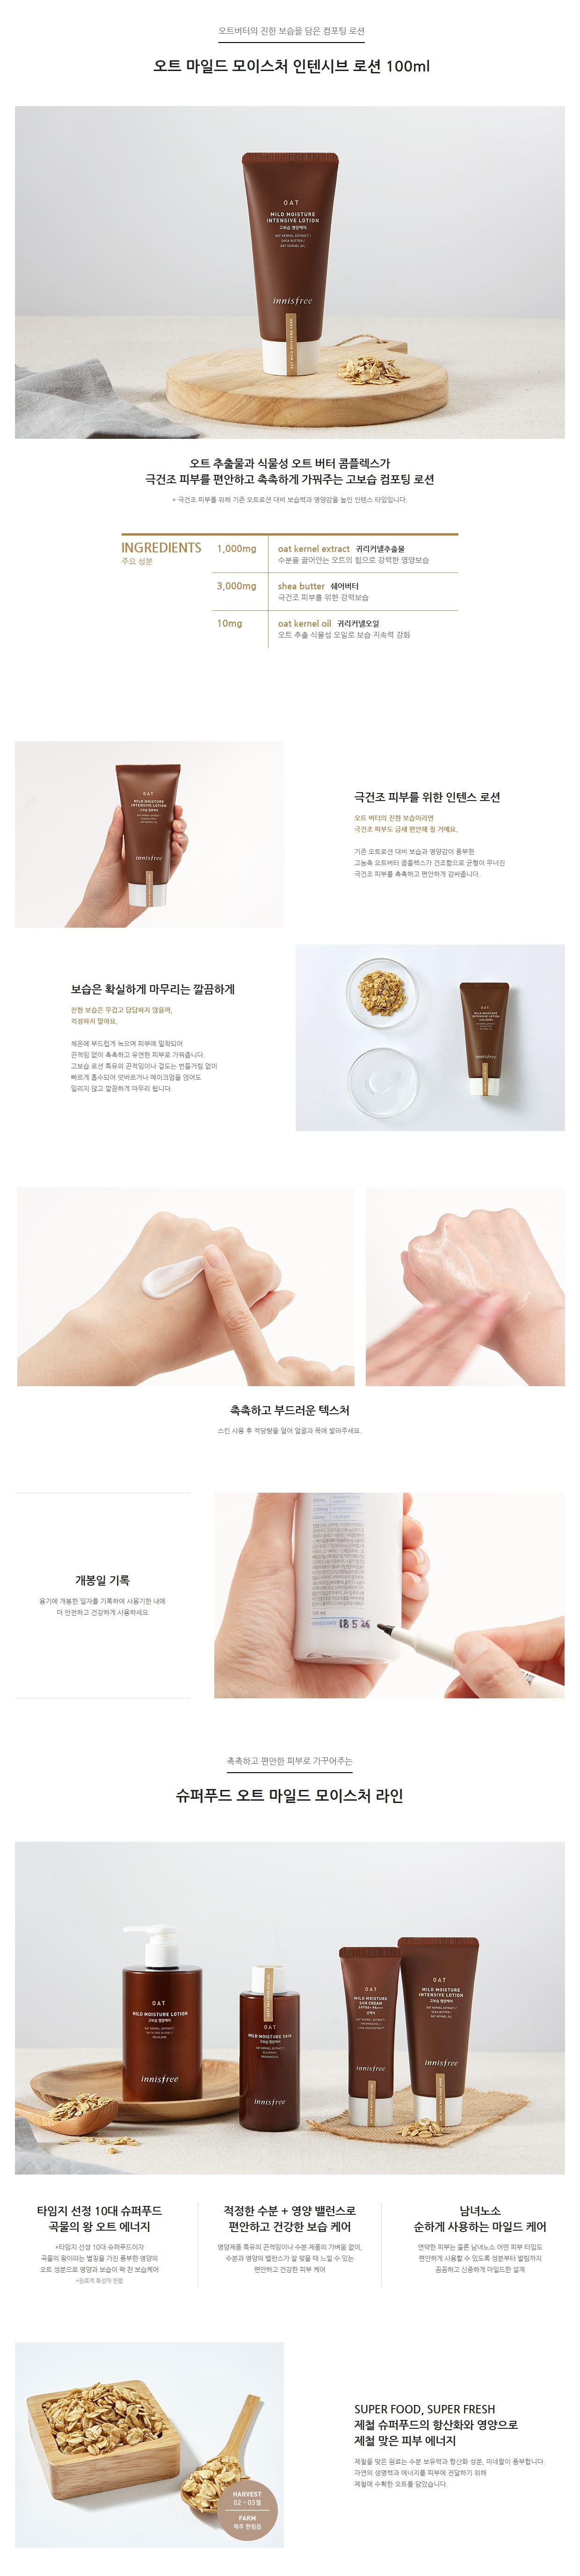 Innisfree Oat Mild Intensive Lotion korean cosmetic cleansing product online shop malaysia china usa2